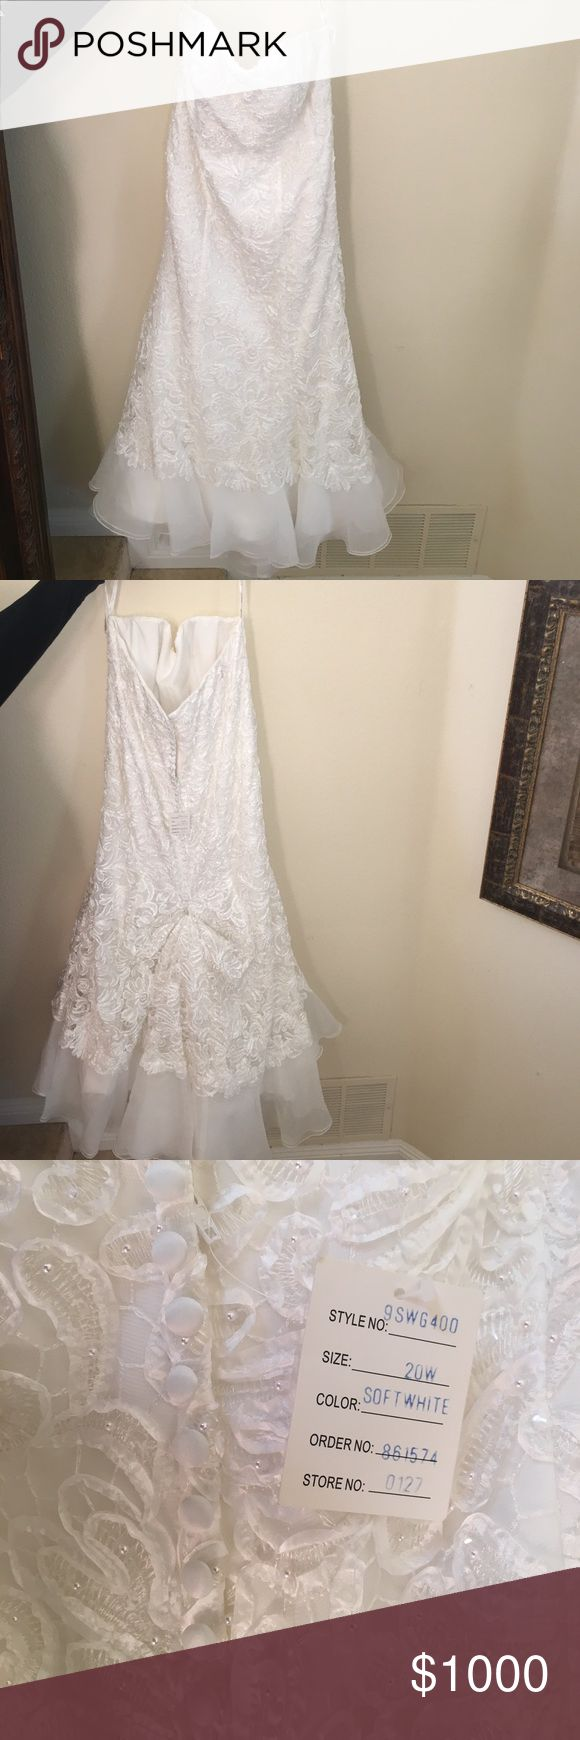 💥1 HOUR 💥Galina Signature Mermaid Wedding Dress Never worn! In perfect condition! Beautiful strapless gown with a mermaid style train. Dress original cost $1500 plus come,  $50 under skirt & $20 dress bag, & $189 wedding dress box - all in original packaging! Wedding was called off so the dress never got to be worn. No trade! Bundle 3+ items for 15% off. REASONABLE offers accepted! Please don't send an offer for 50% off. Thank you! David's Bridal Dresses Wedding